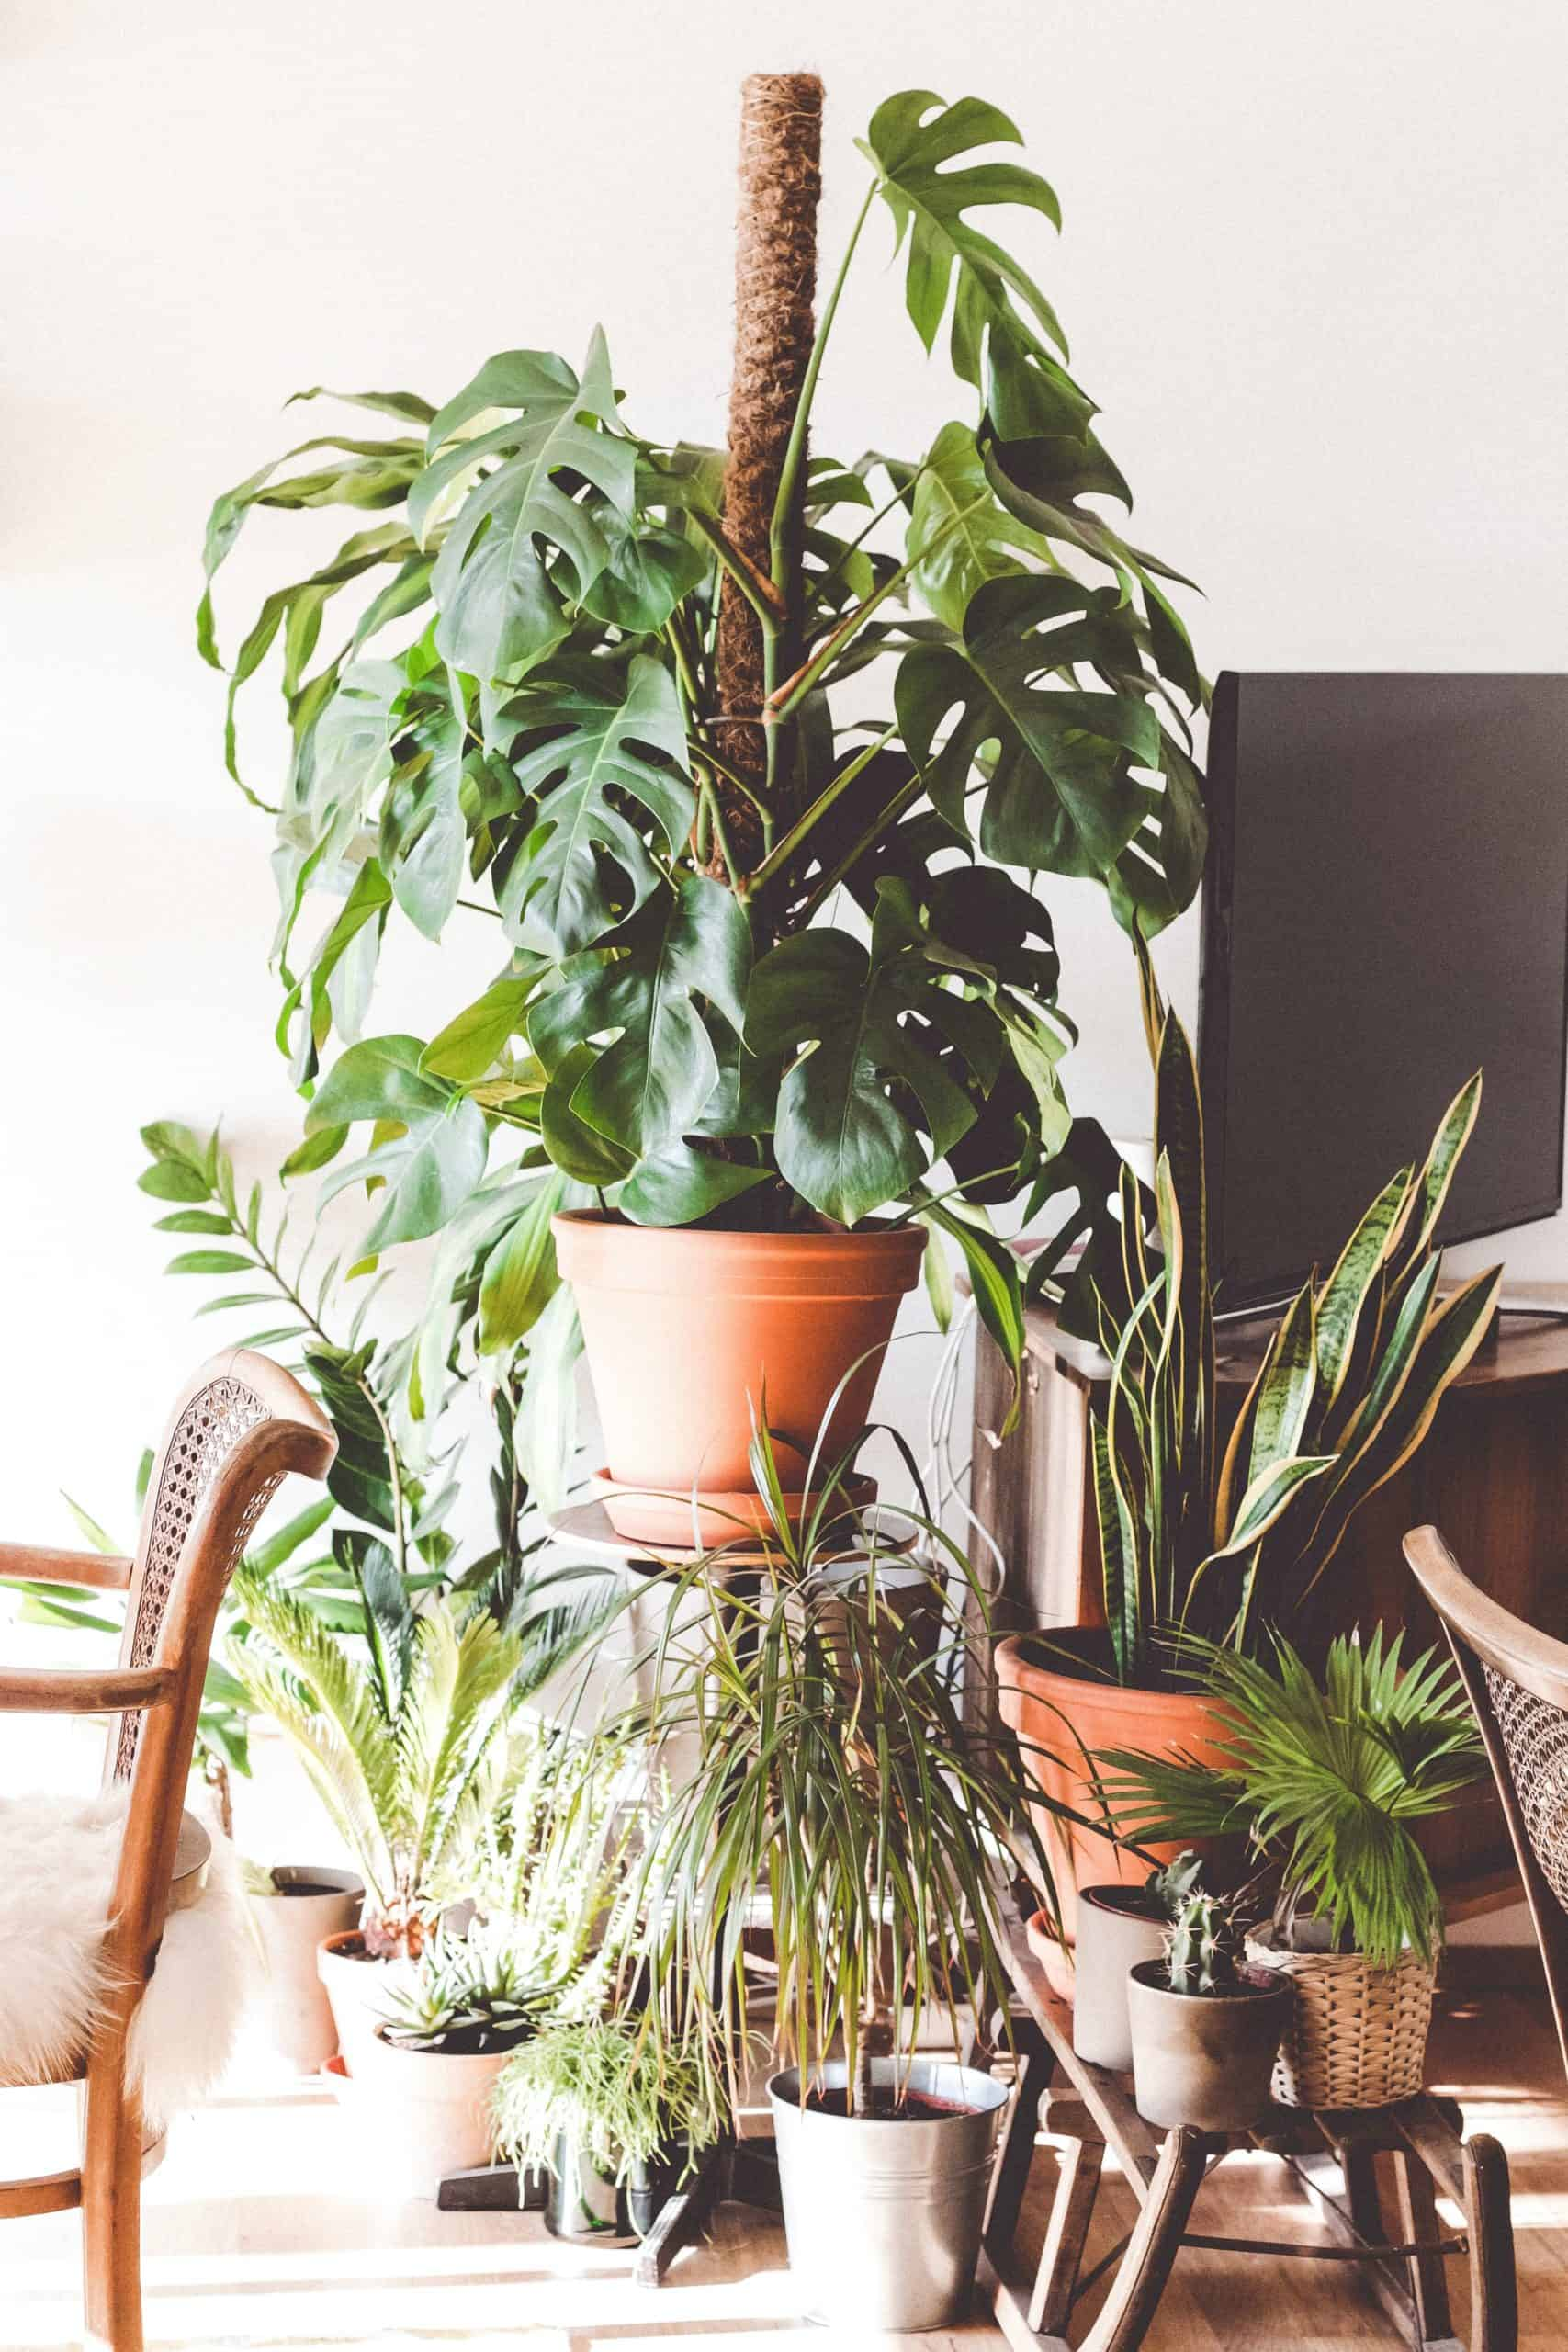 Lighting Plants - What You Need To Know